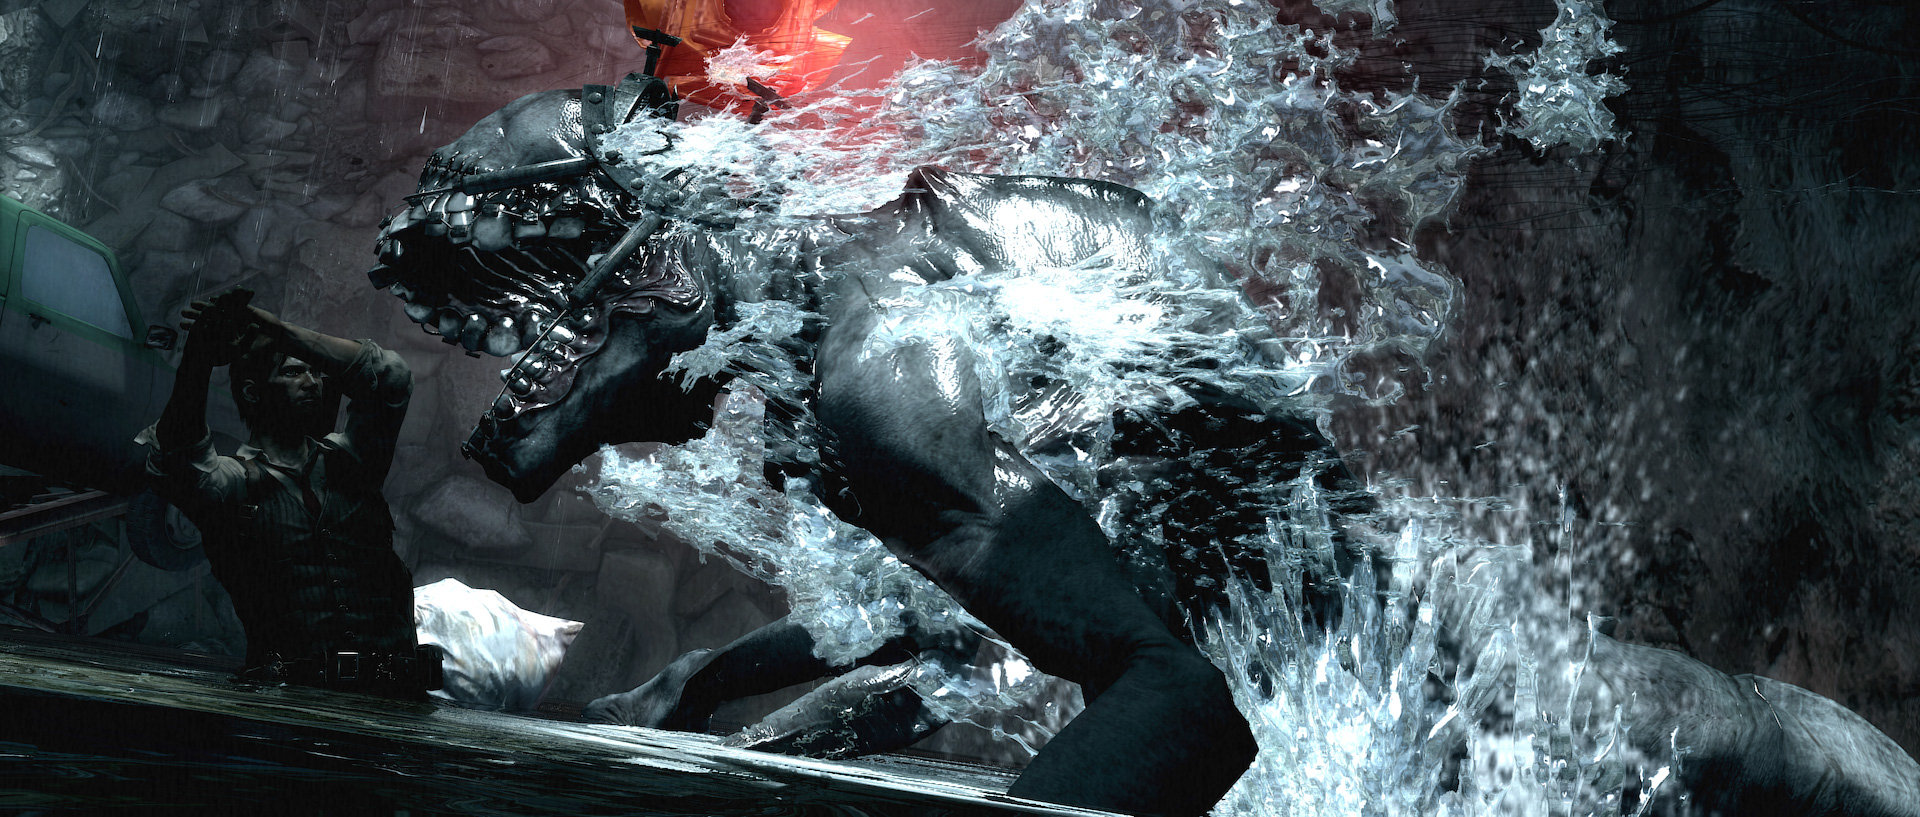 the-evil-within-screen-06-us-18jun14?$Me